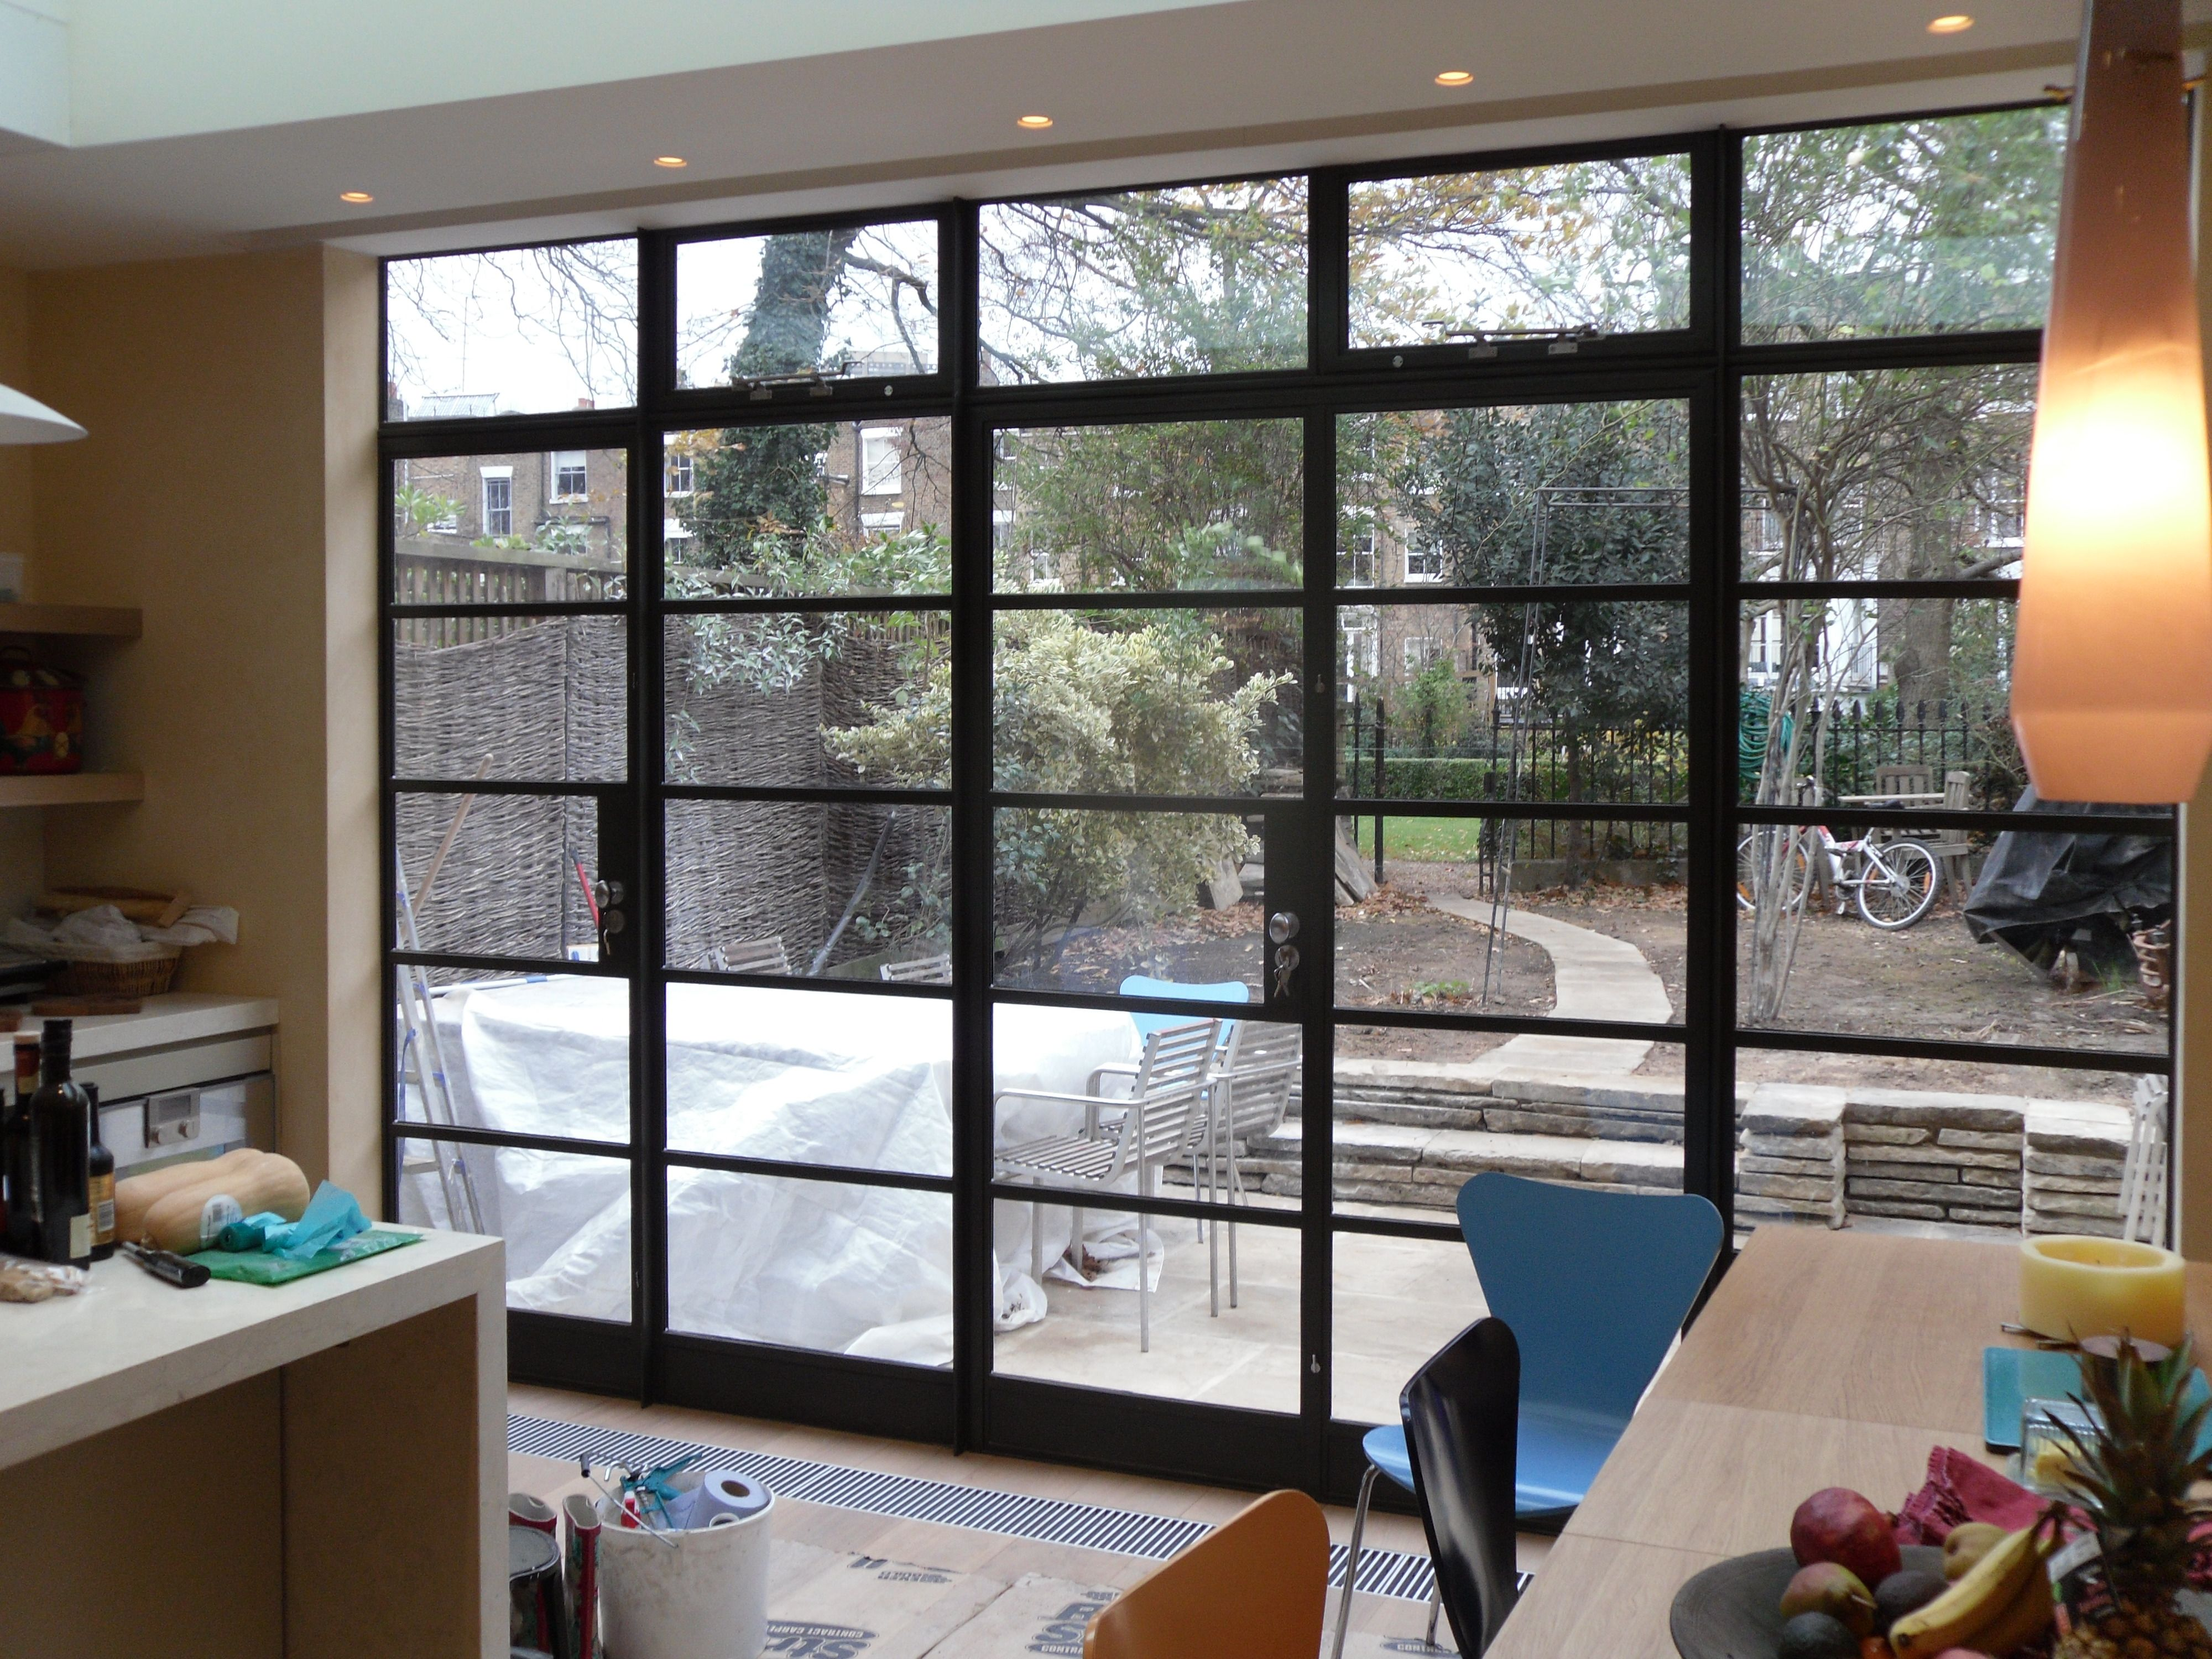 crittall steel doors installed by lightfoot windows kent. Black Bedroom Furniture Sets. Home Design Ideas